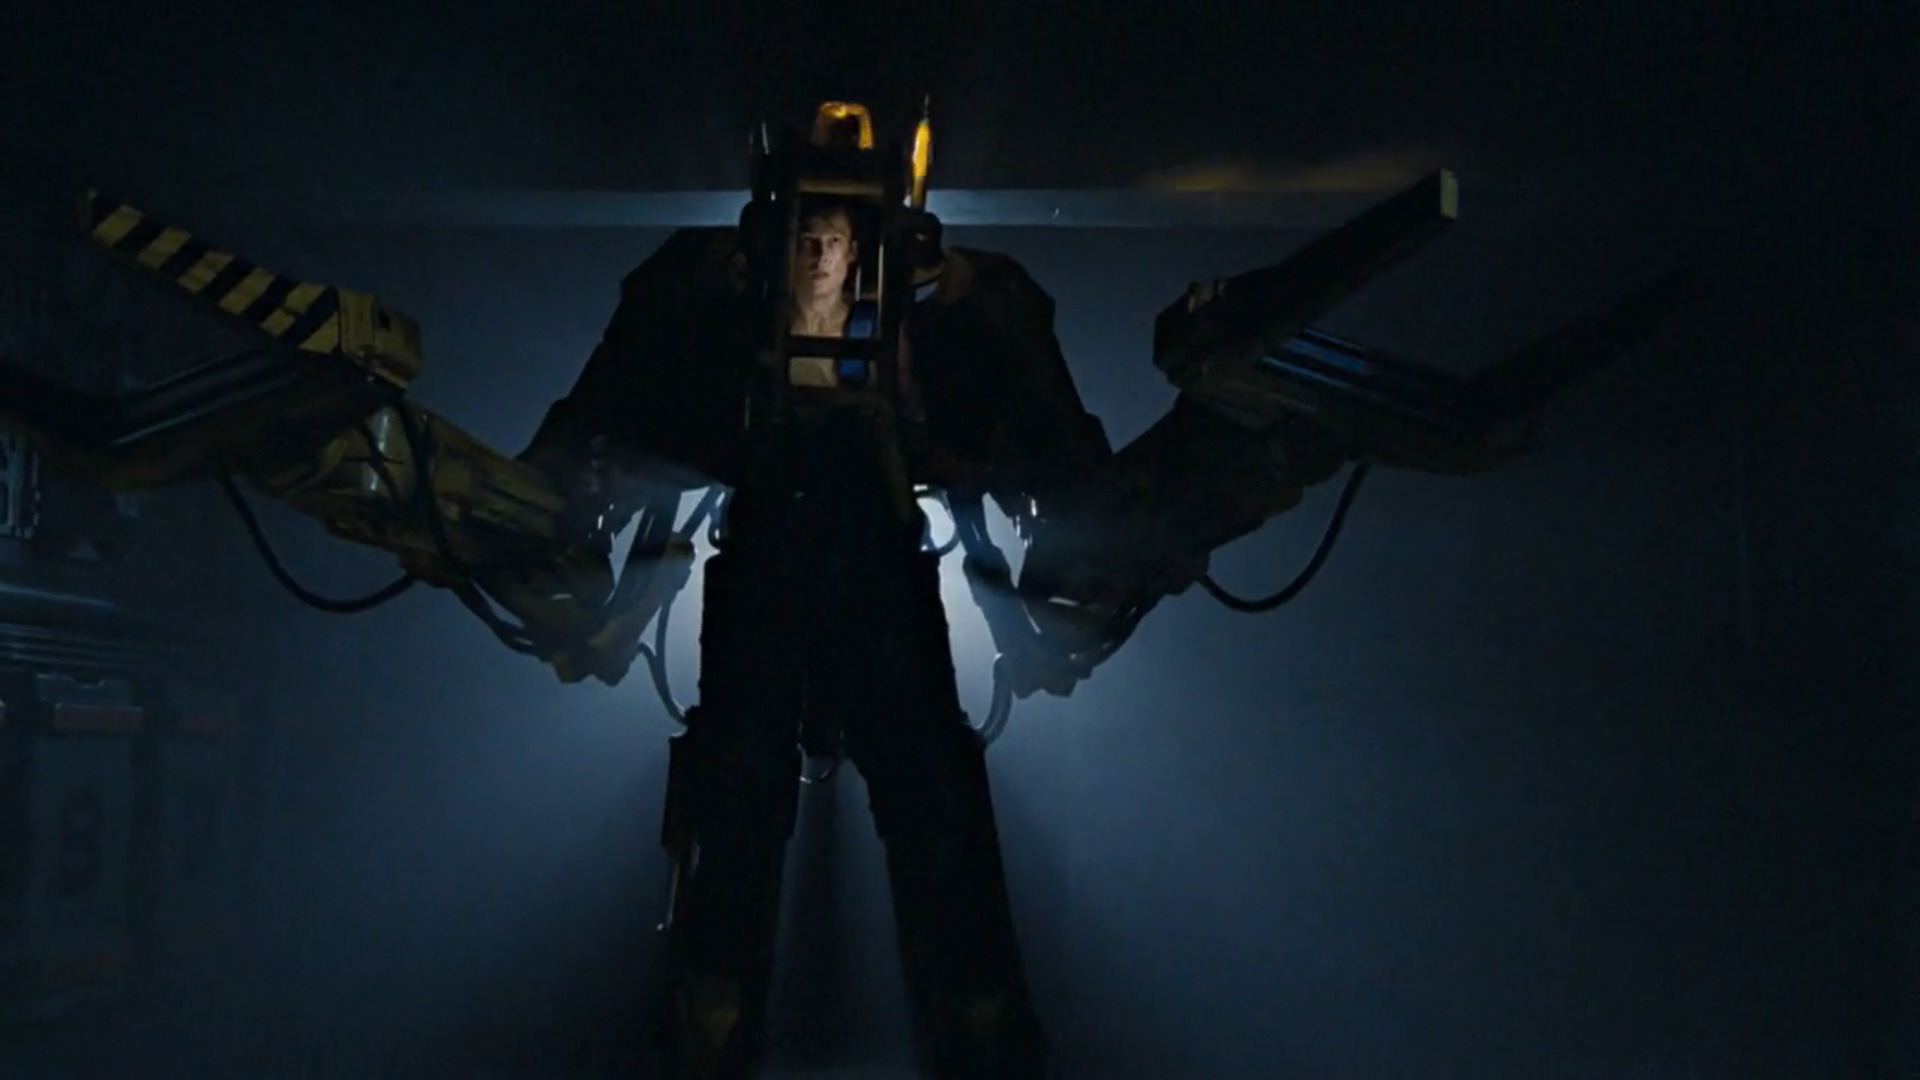 Ripley mans the ship's exosuit during her final confrontation with the Xenomorph Queen.